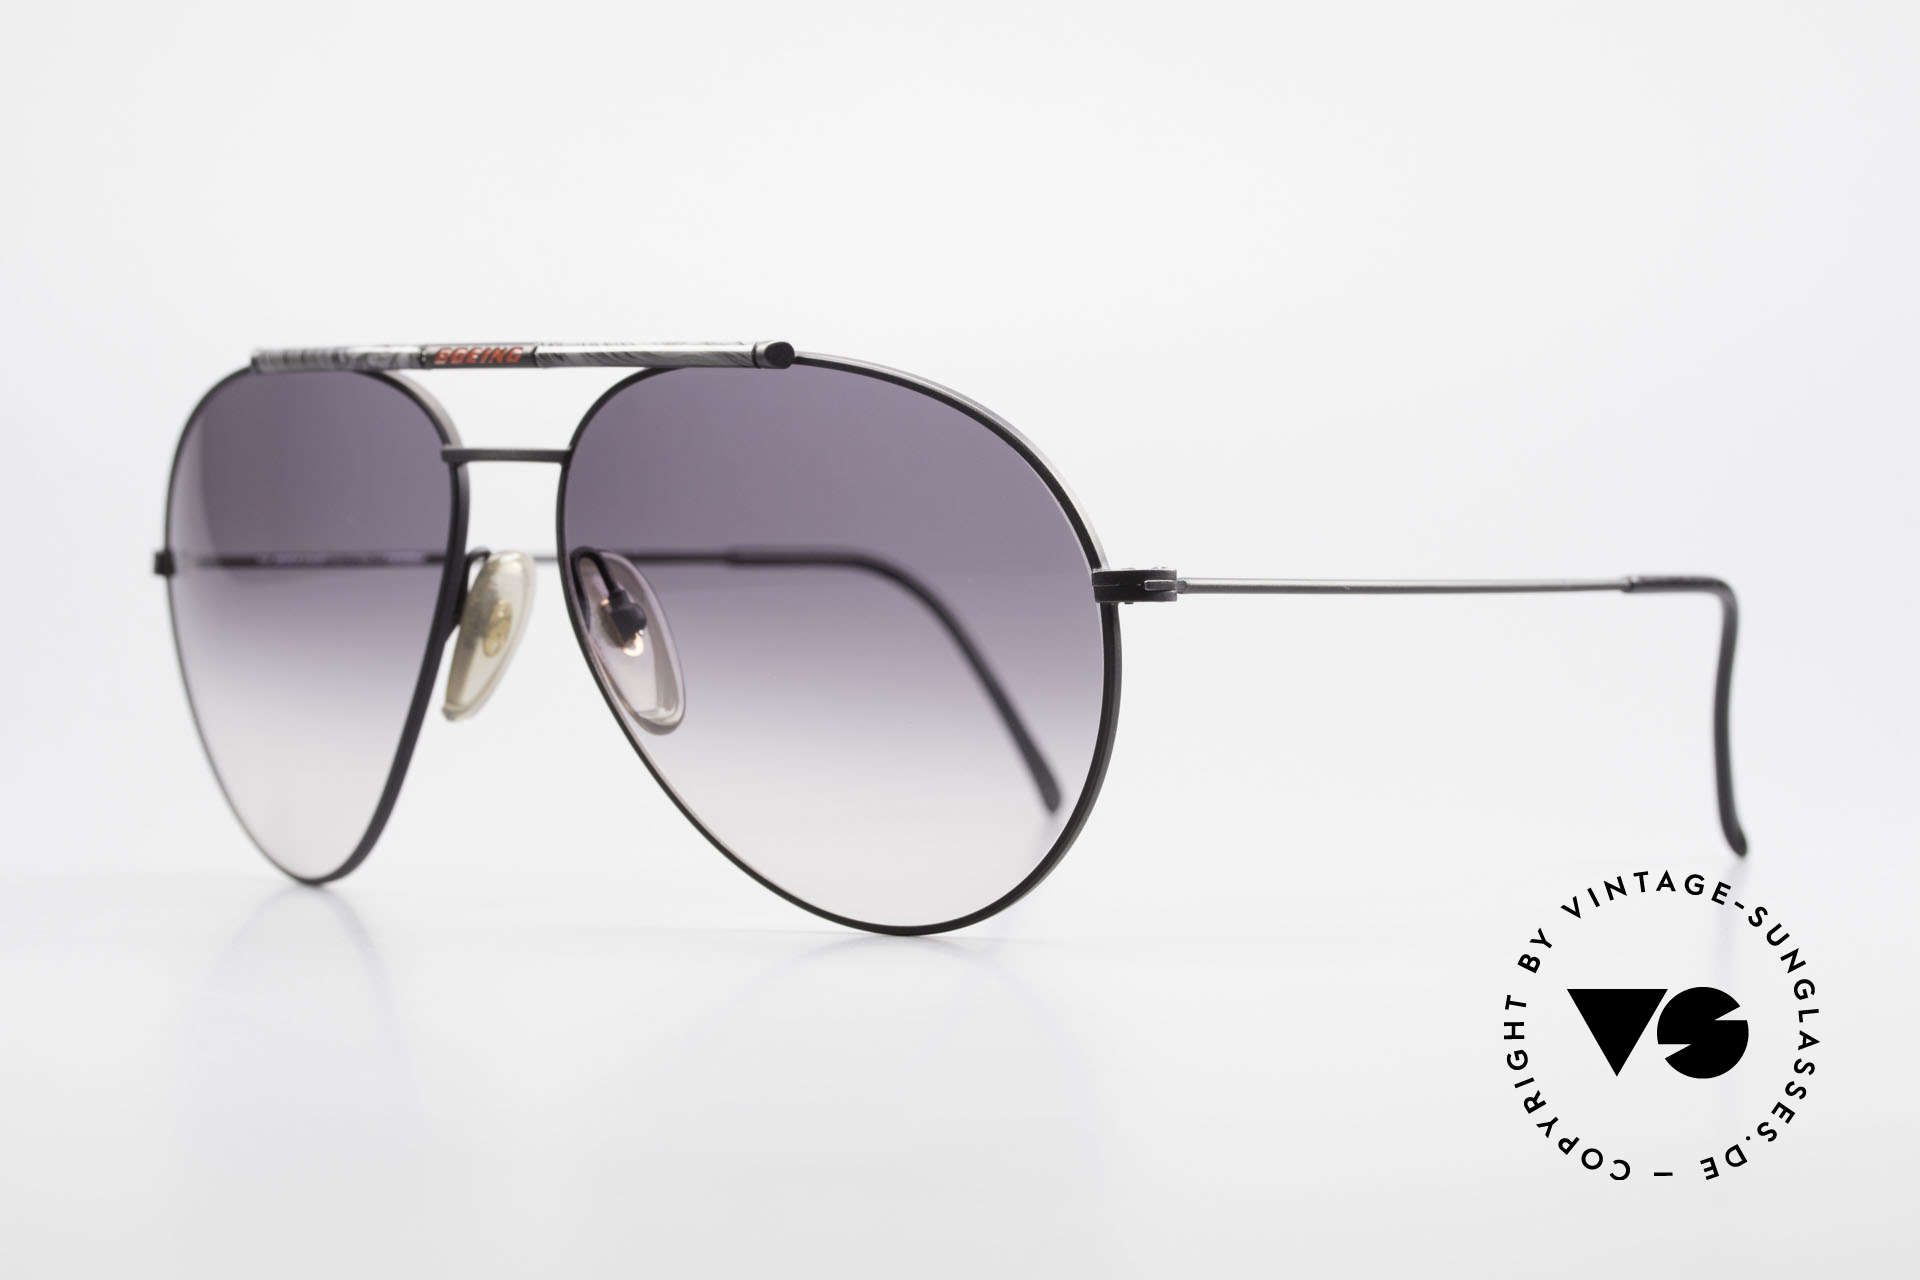 Boeing 5706 Rare 80s Aviator Sunglasses XL, conspicuous bar with the prestigious Boeing label, Made for Men